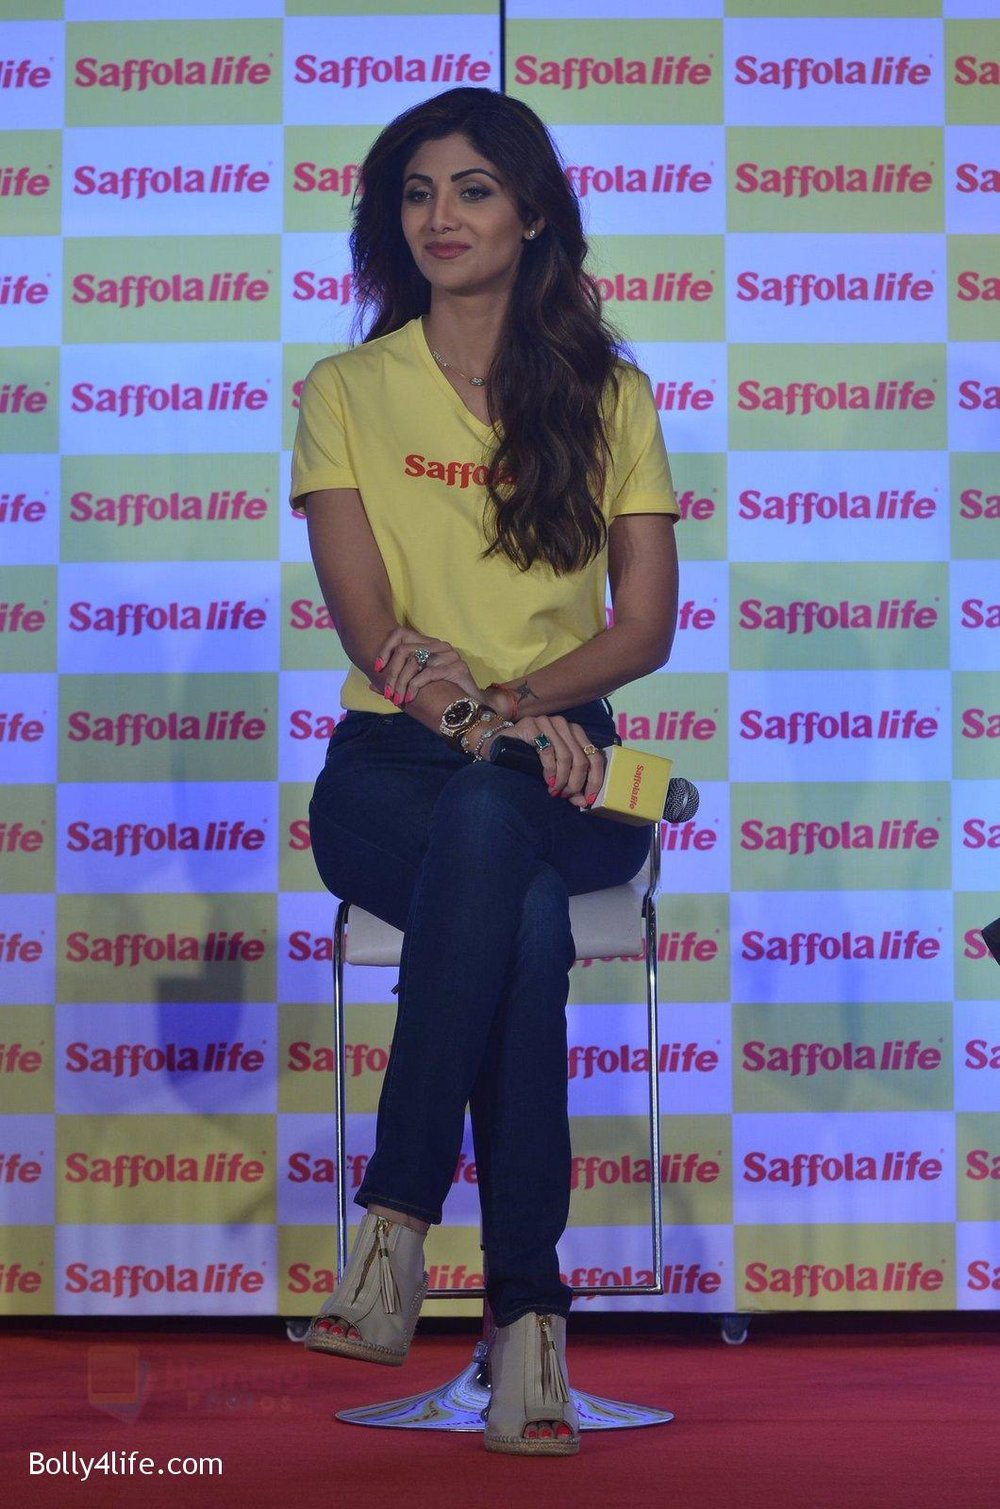 Shilpa-Shetty-during-the-World-Heart-Day-program-organized-by-Saffola-Life-in-Mumbai-on-28th-Sept-2016-54.jpg